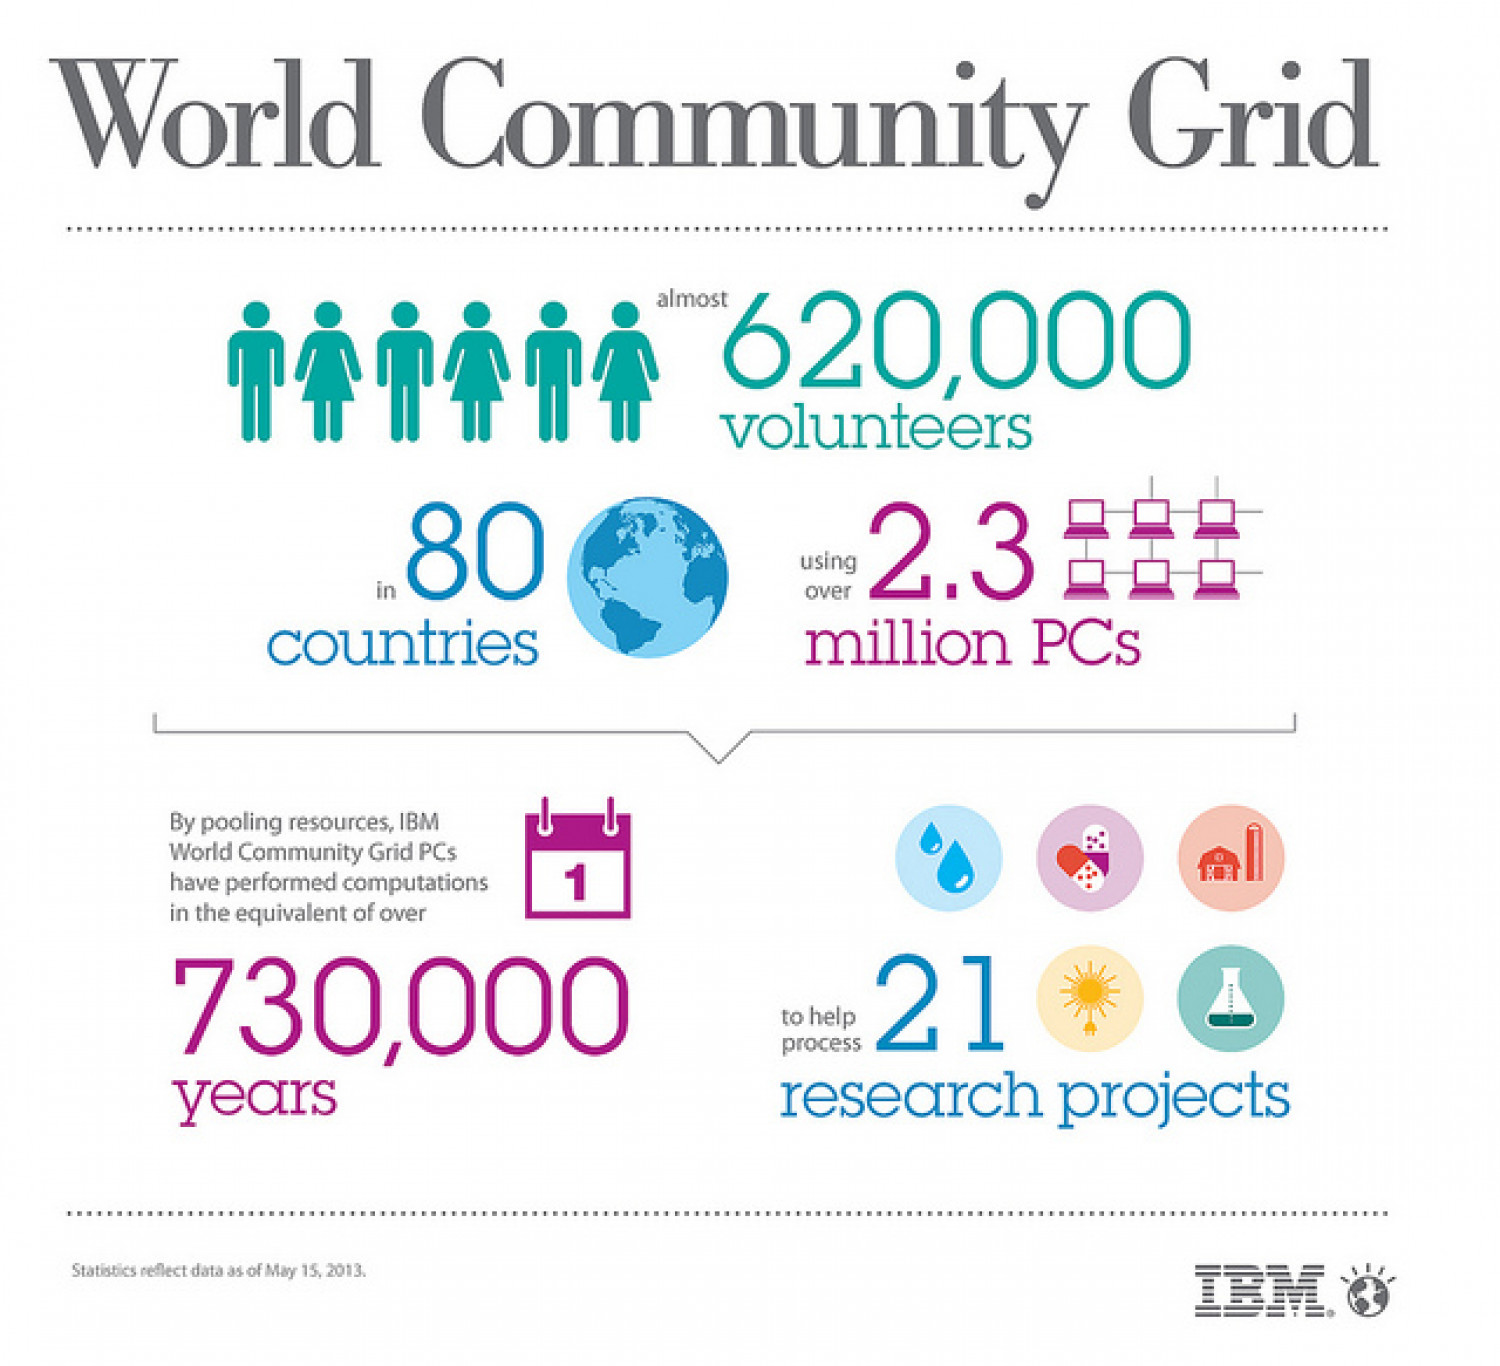 World Community Grid Infographic